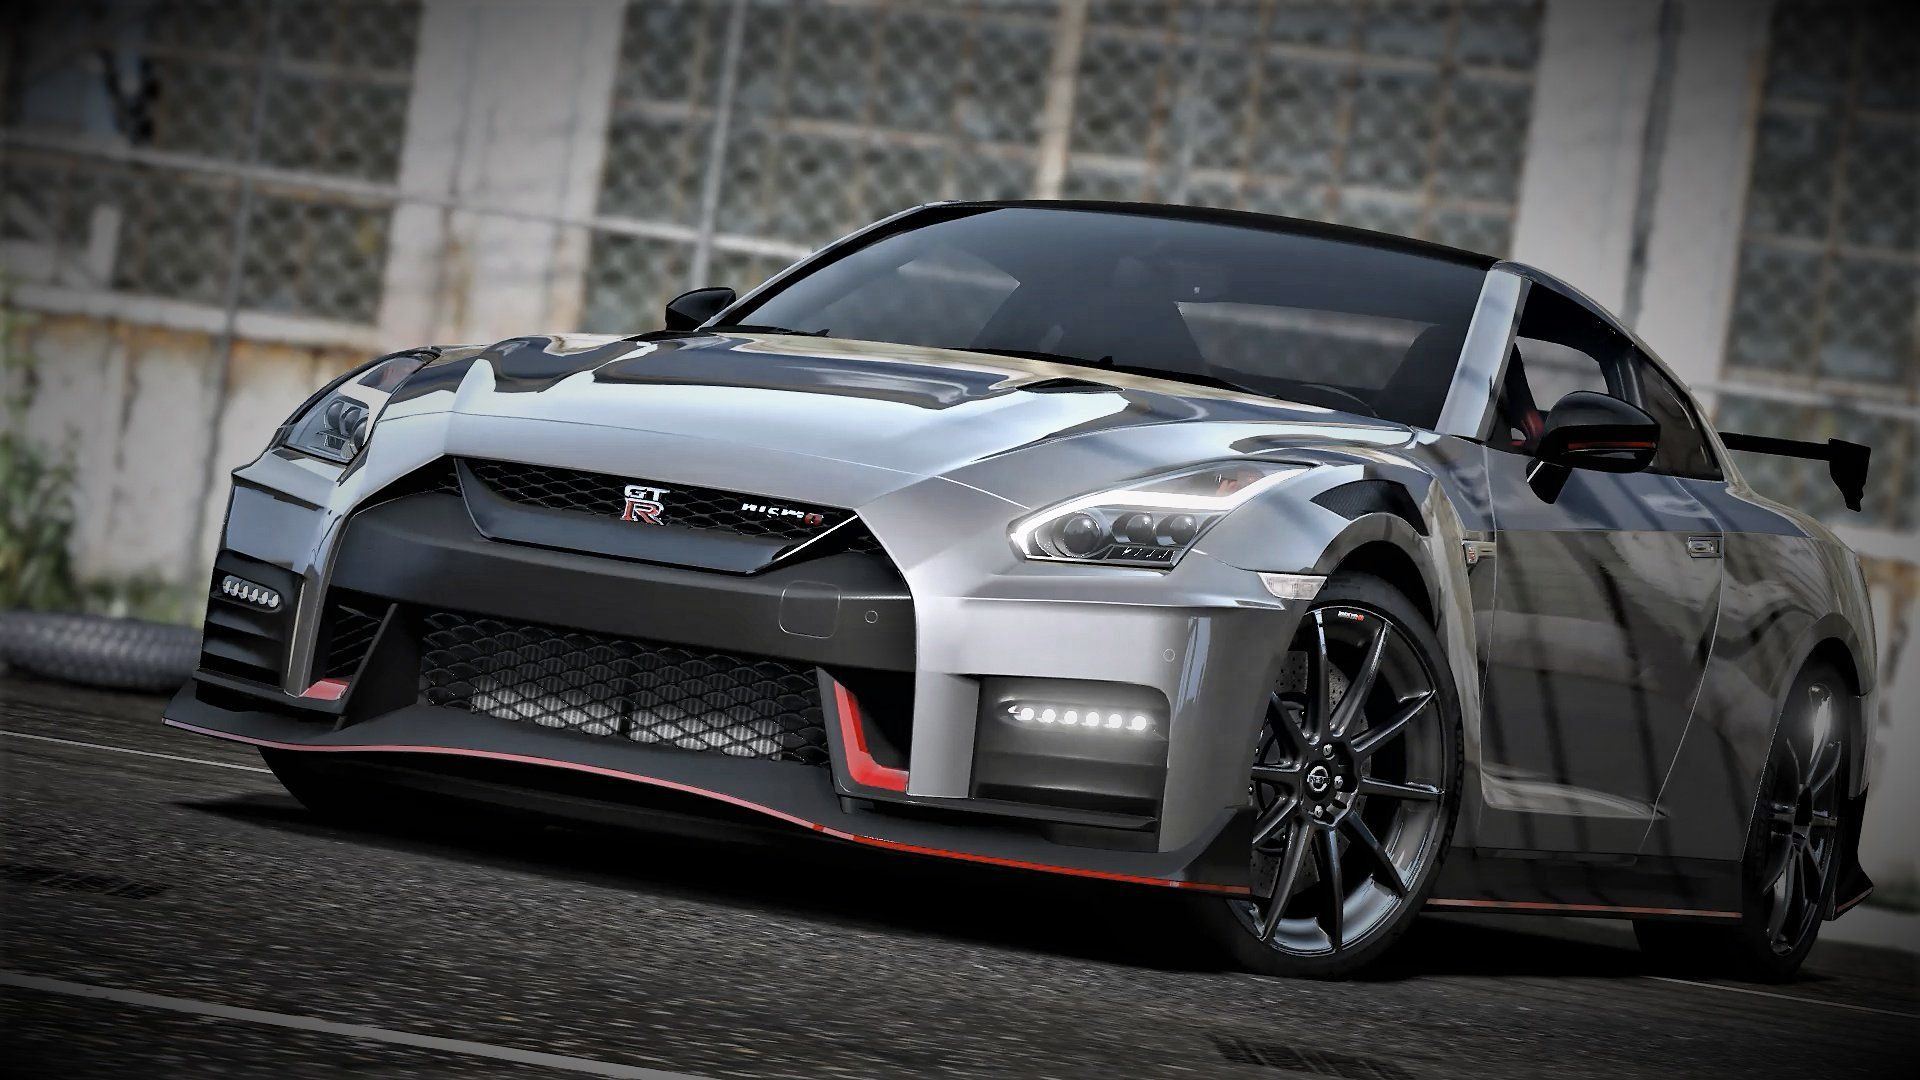 Nissan Gt R Sports 2020 Wallpapers Top Free Nissan Gt R Sports 2020 Backgrounds Wallpaperaccess